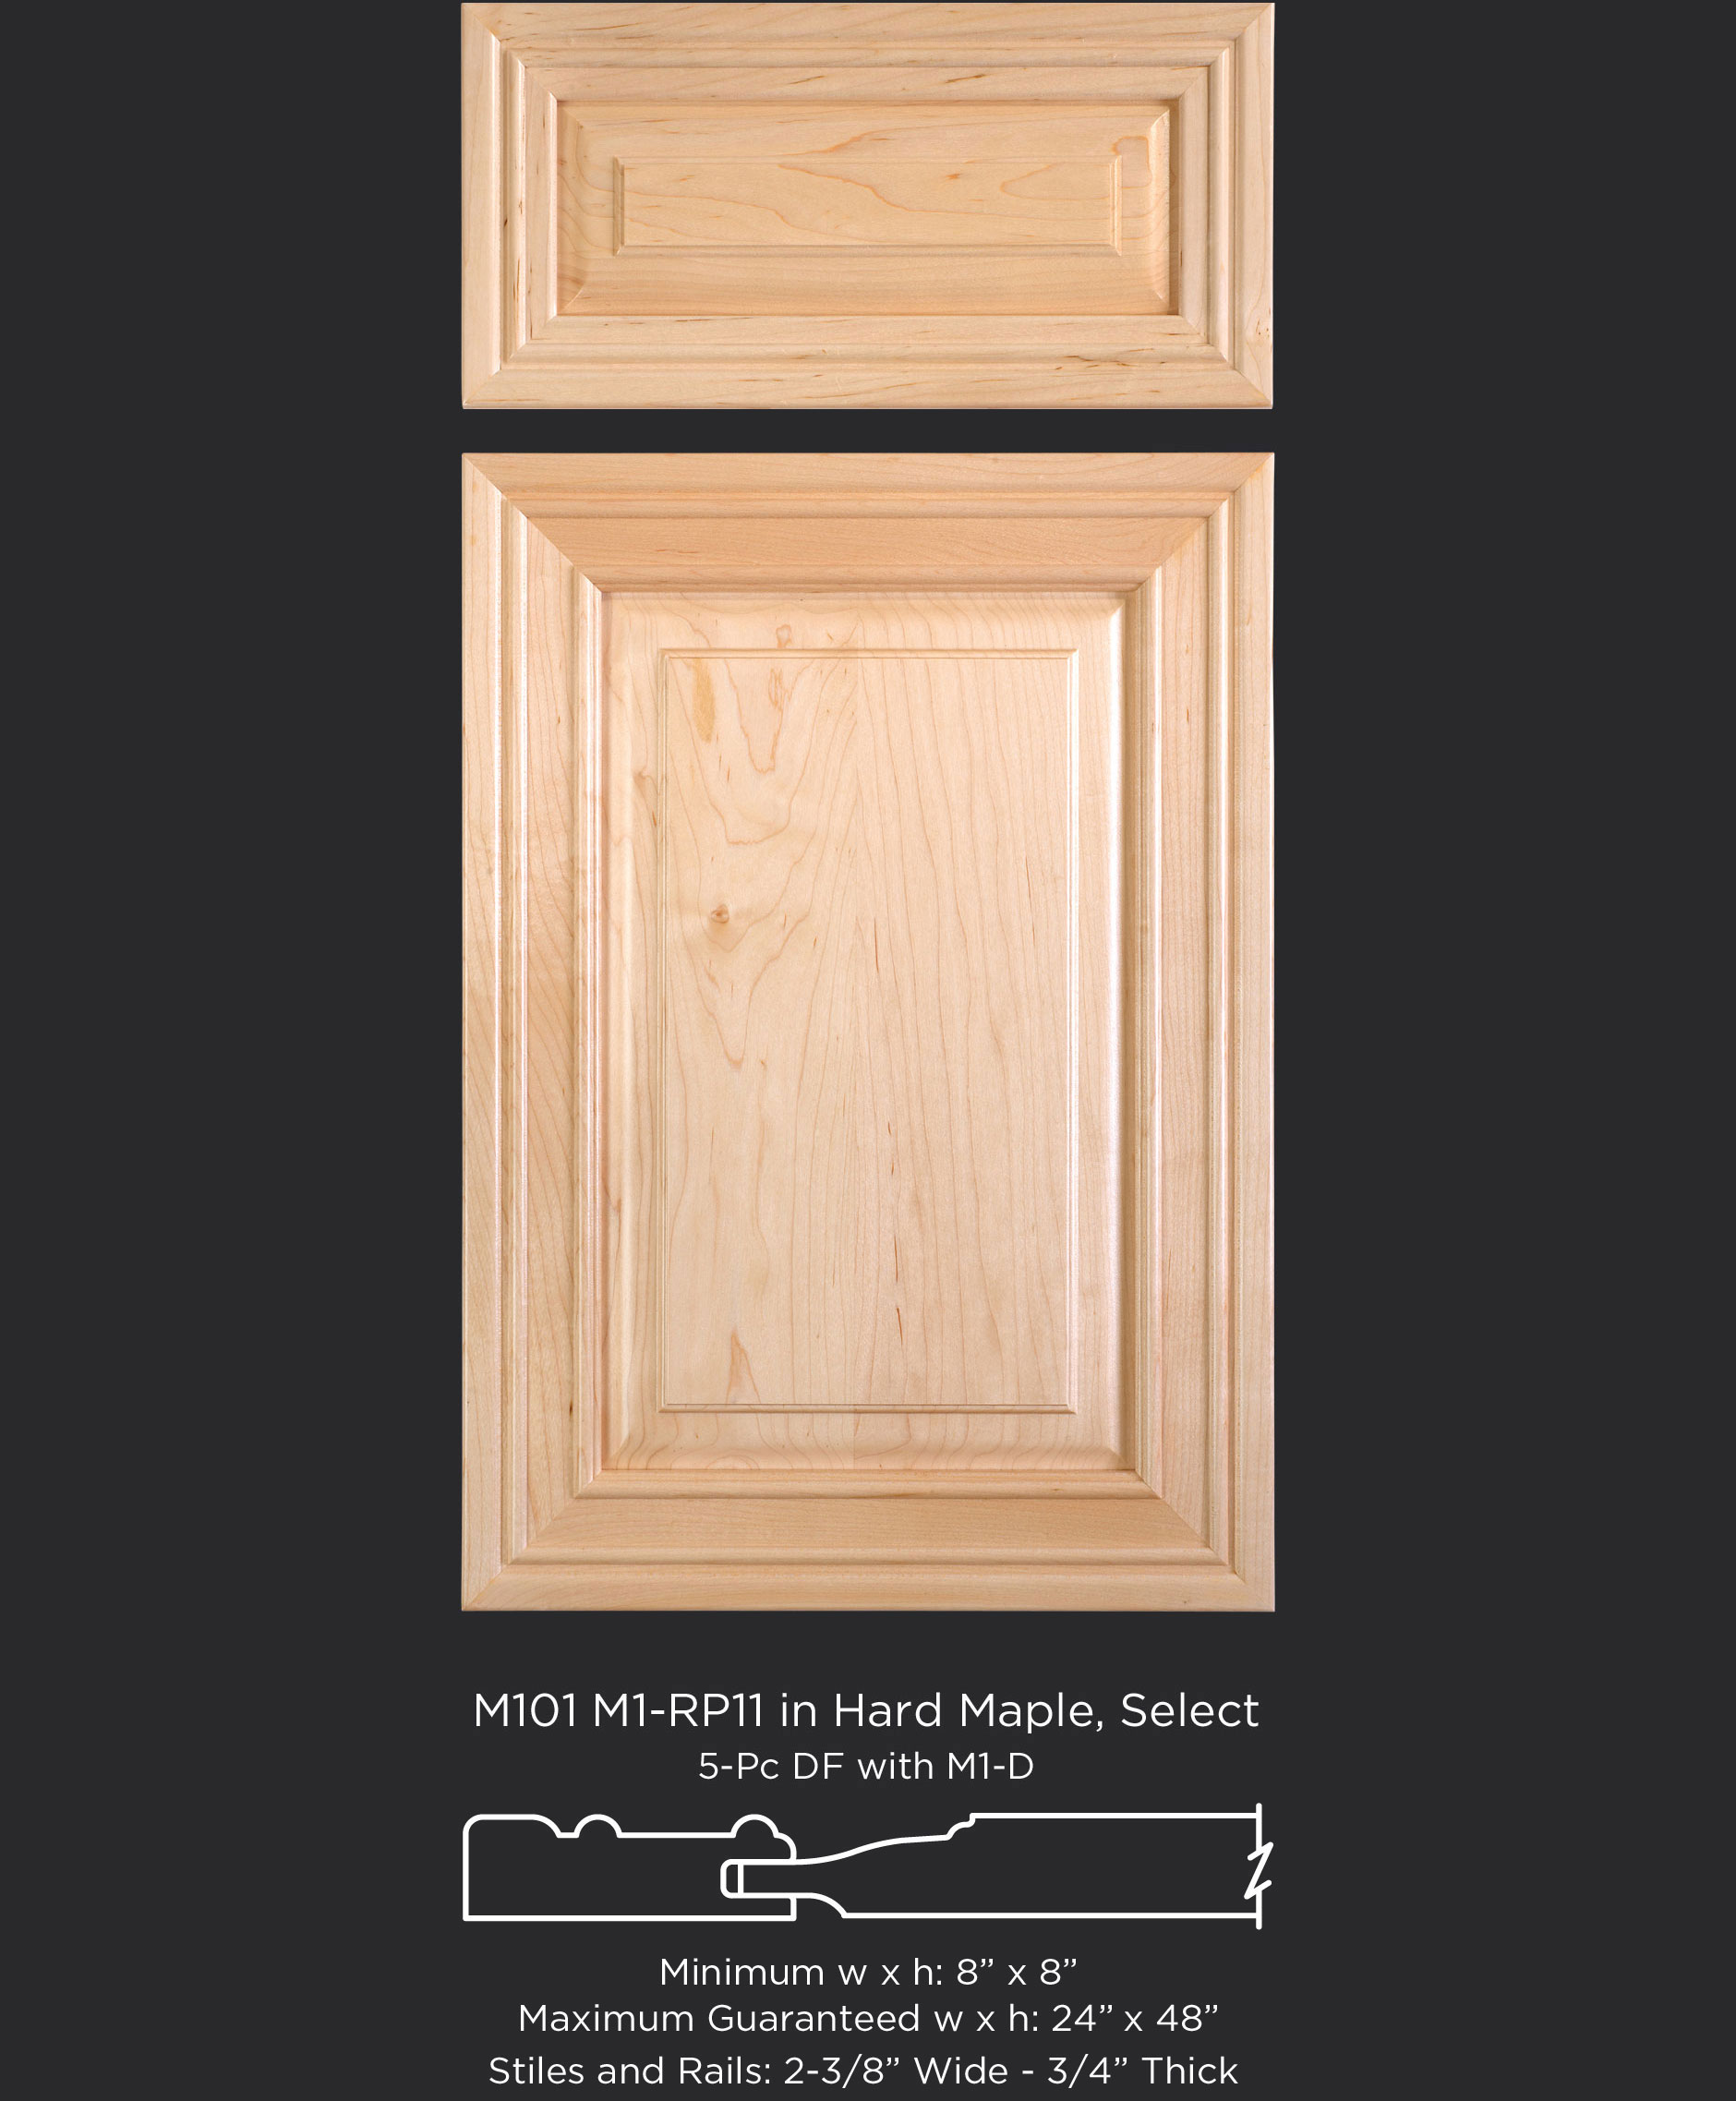 Mitered Cabinet Door M101 M1-RP11 in Hard Maple, Select and 5-piece drawer front with M1-D